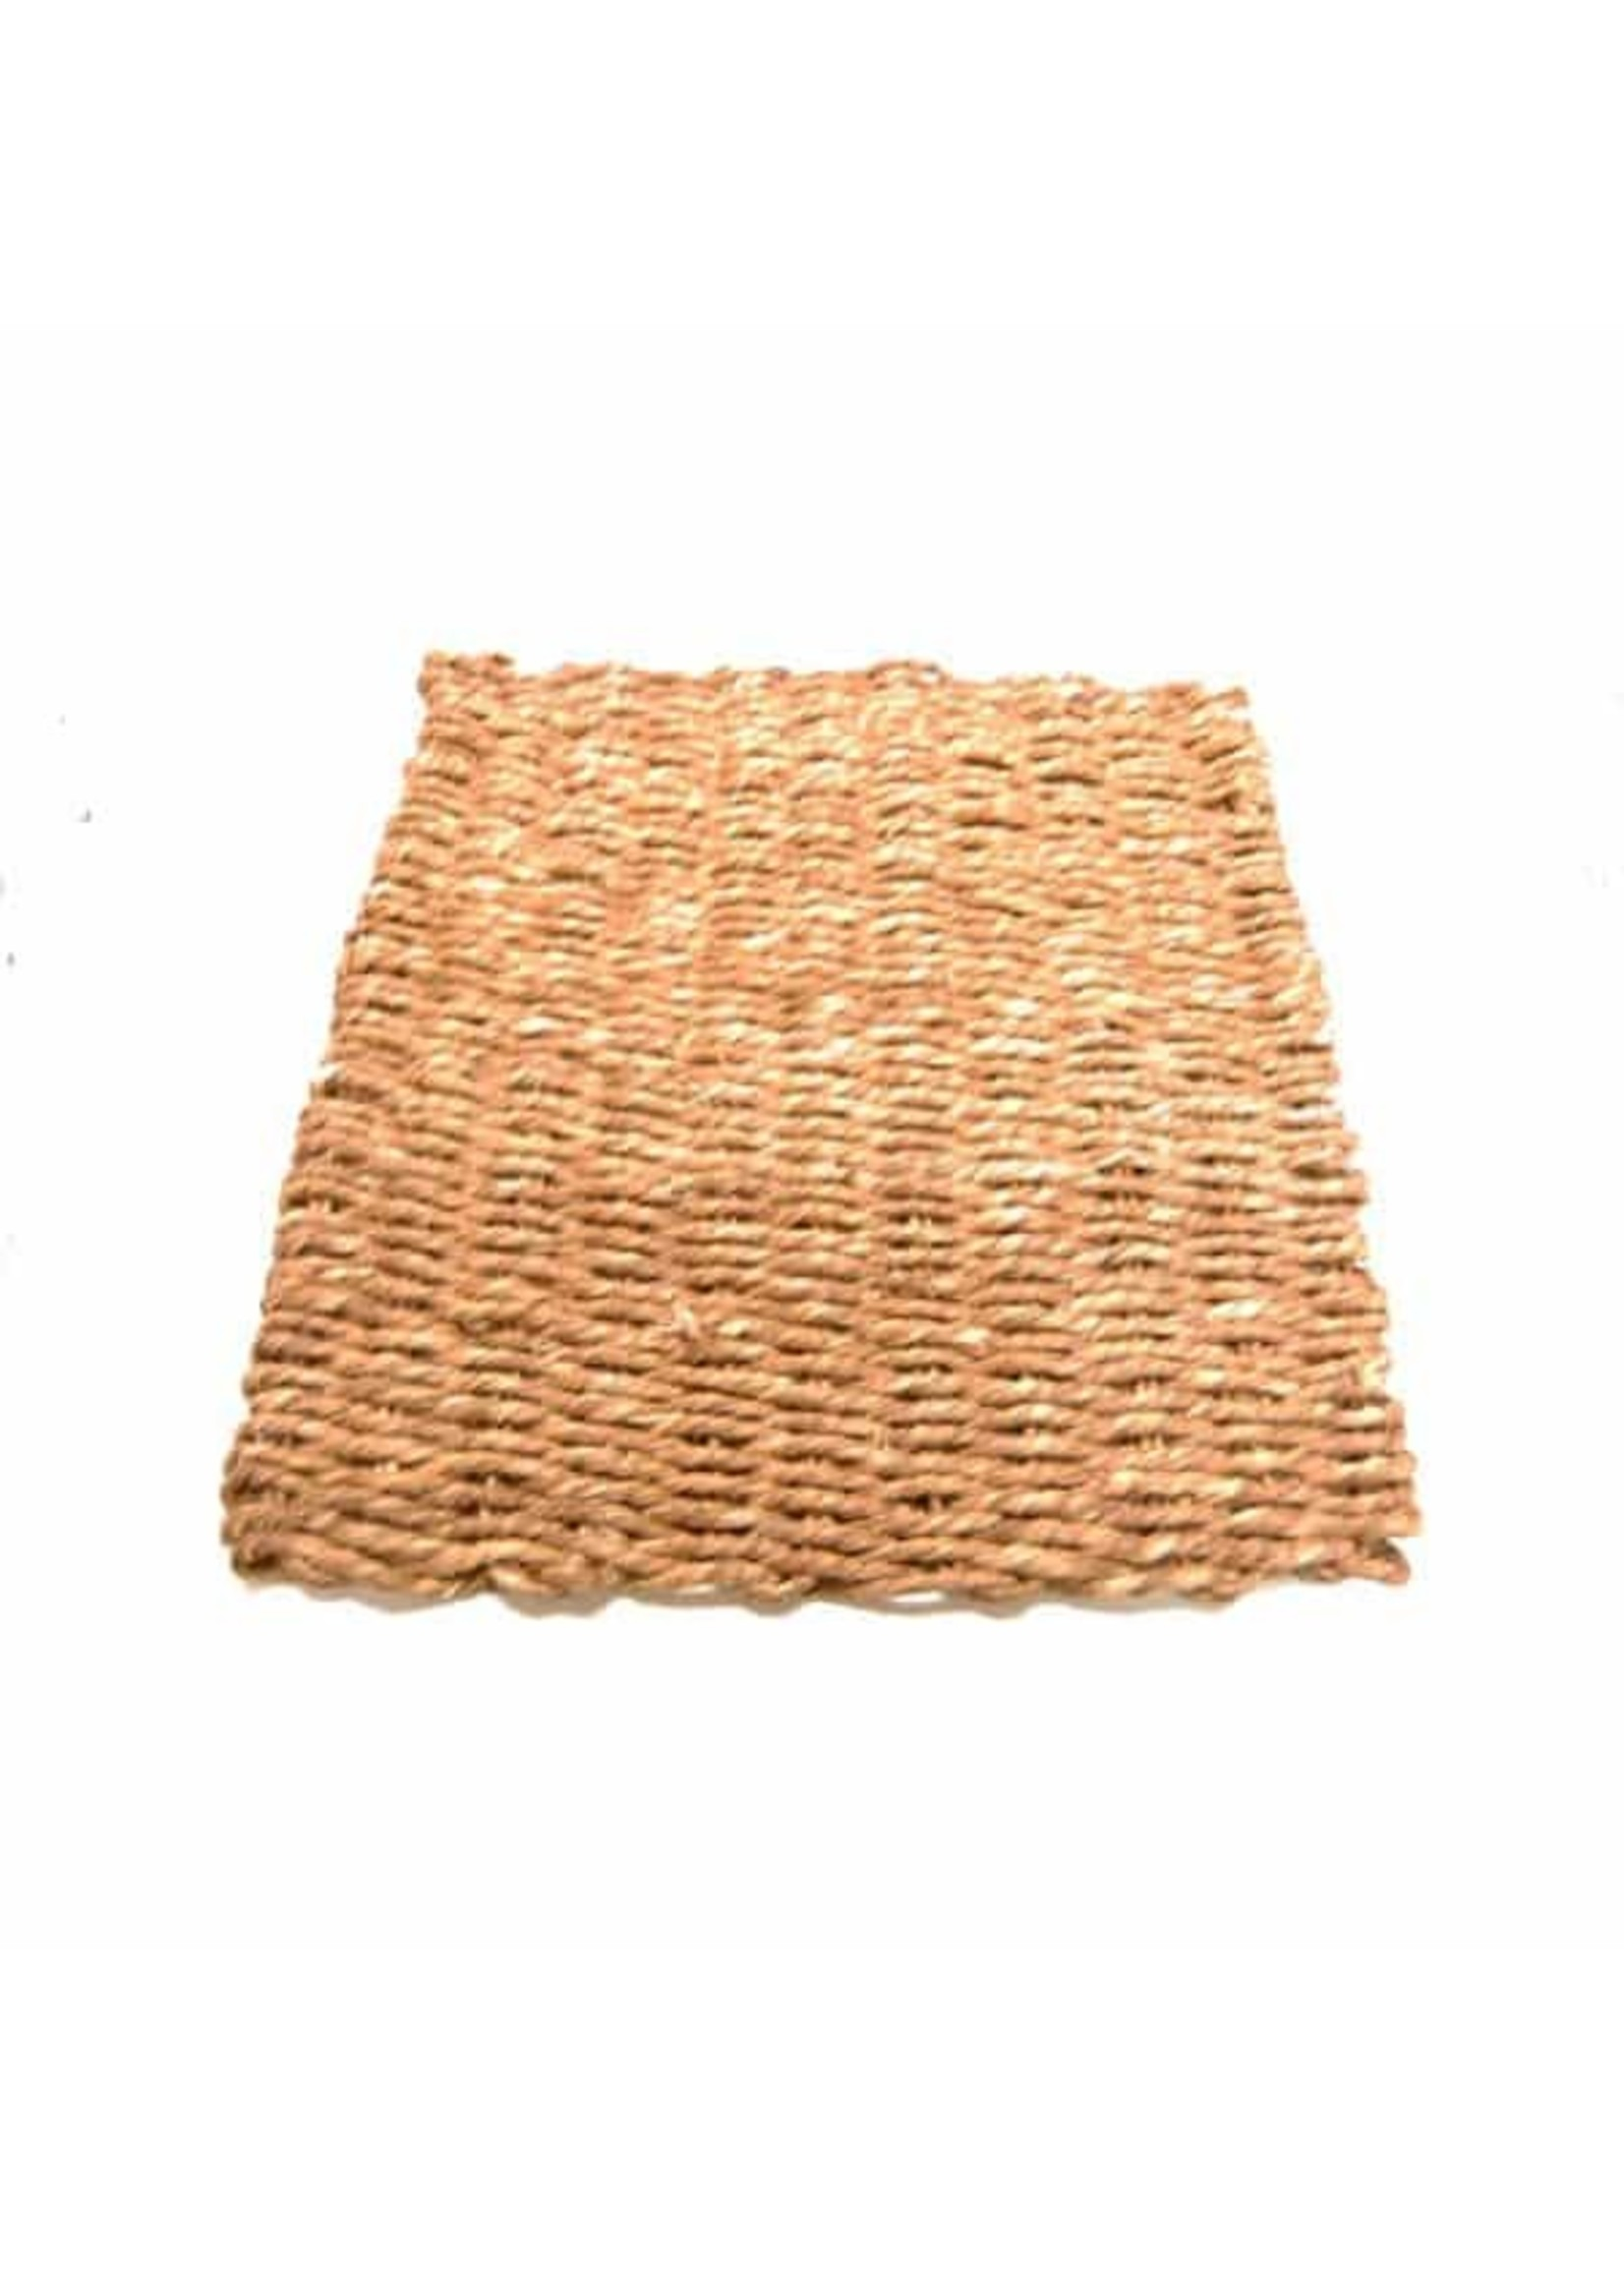 Zoo-Max Seagrass mat double weave 11″X 11″